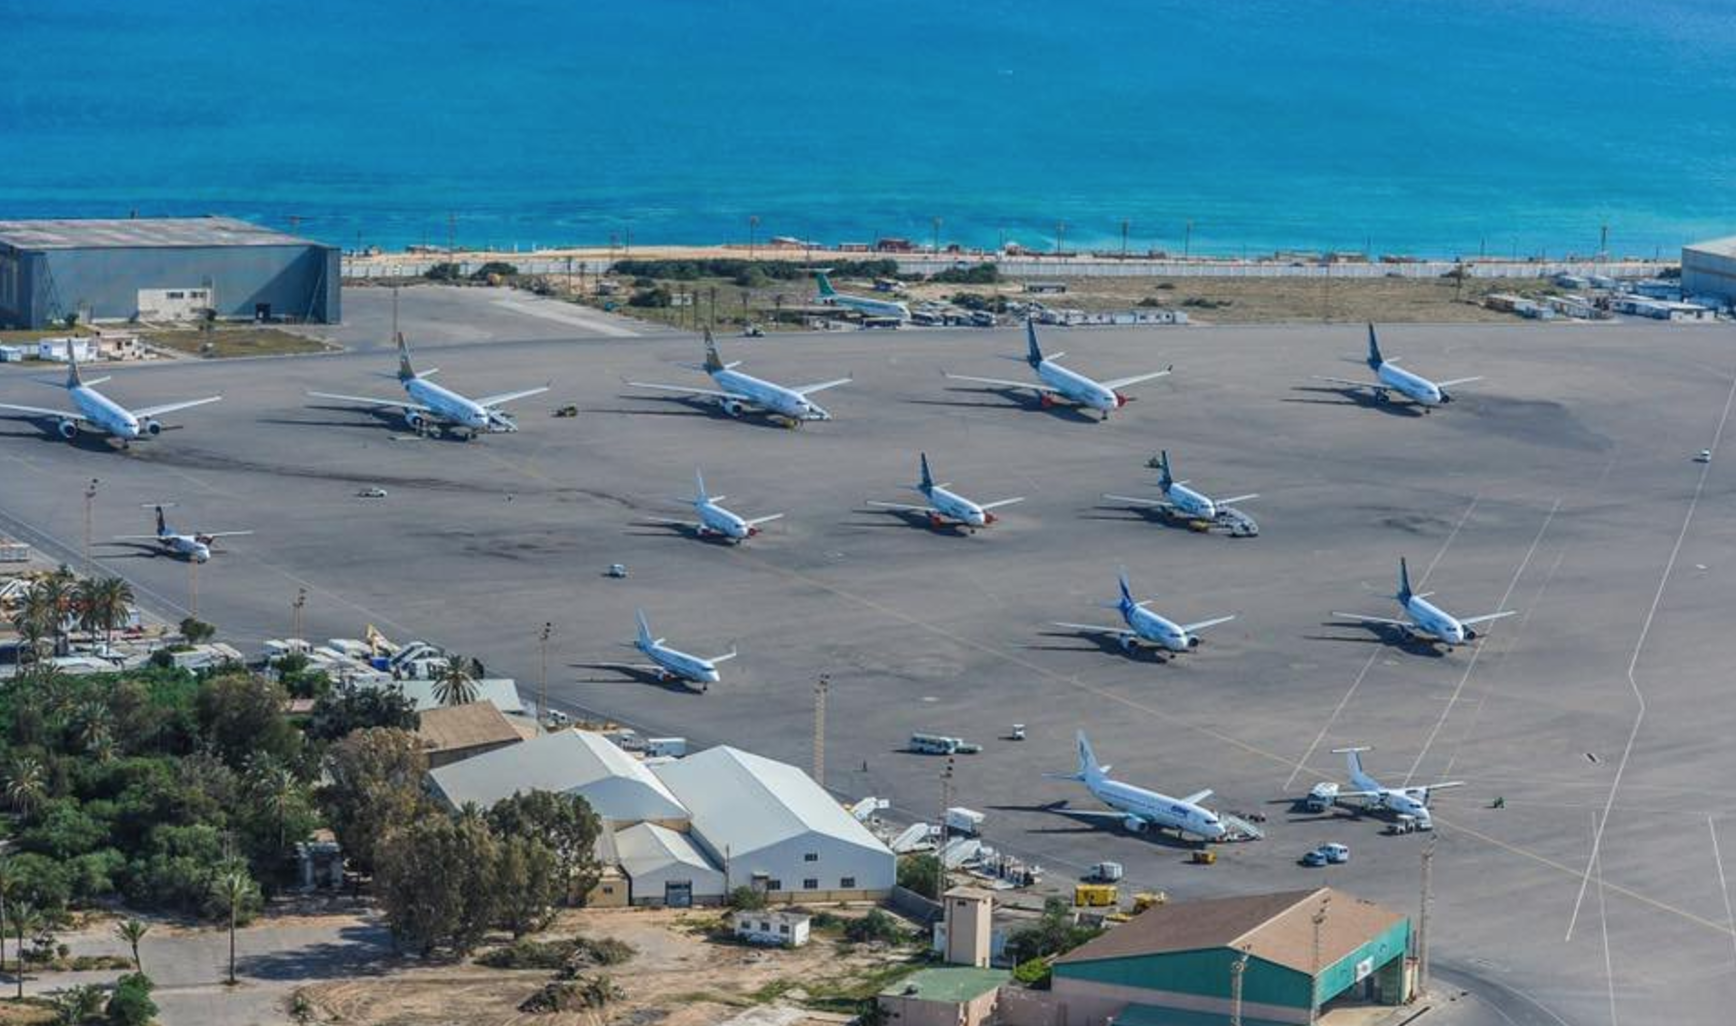 Fighting at Tripoli Airport, 5 killed